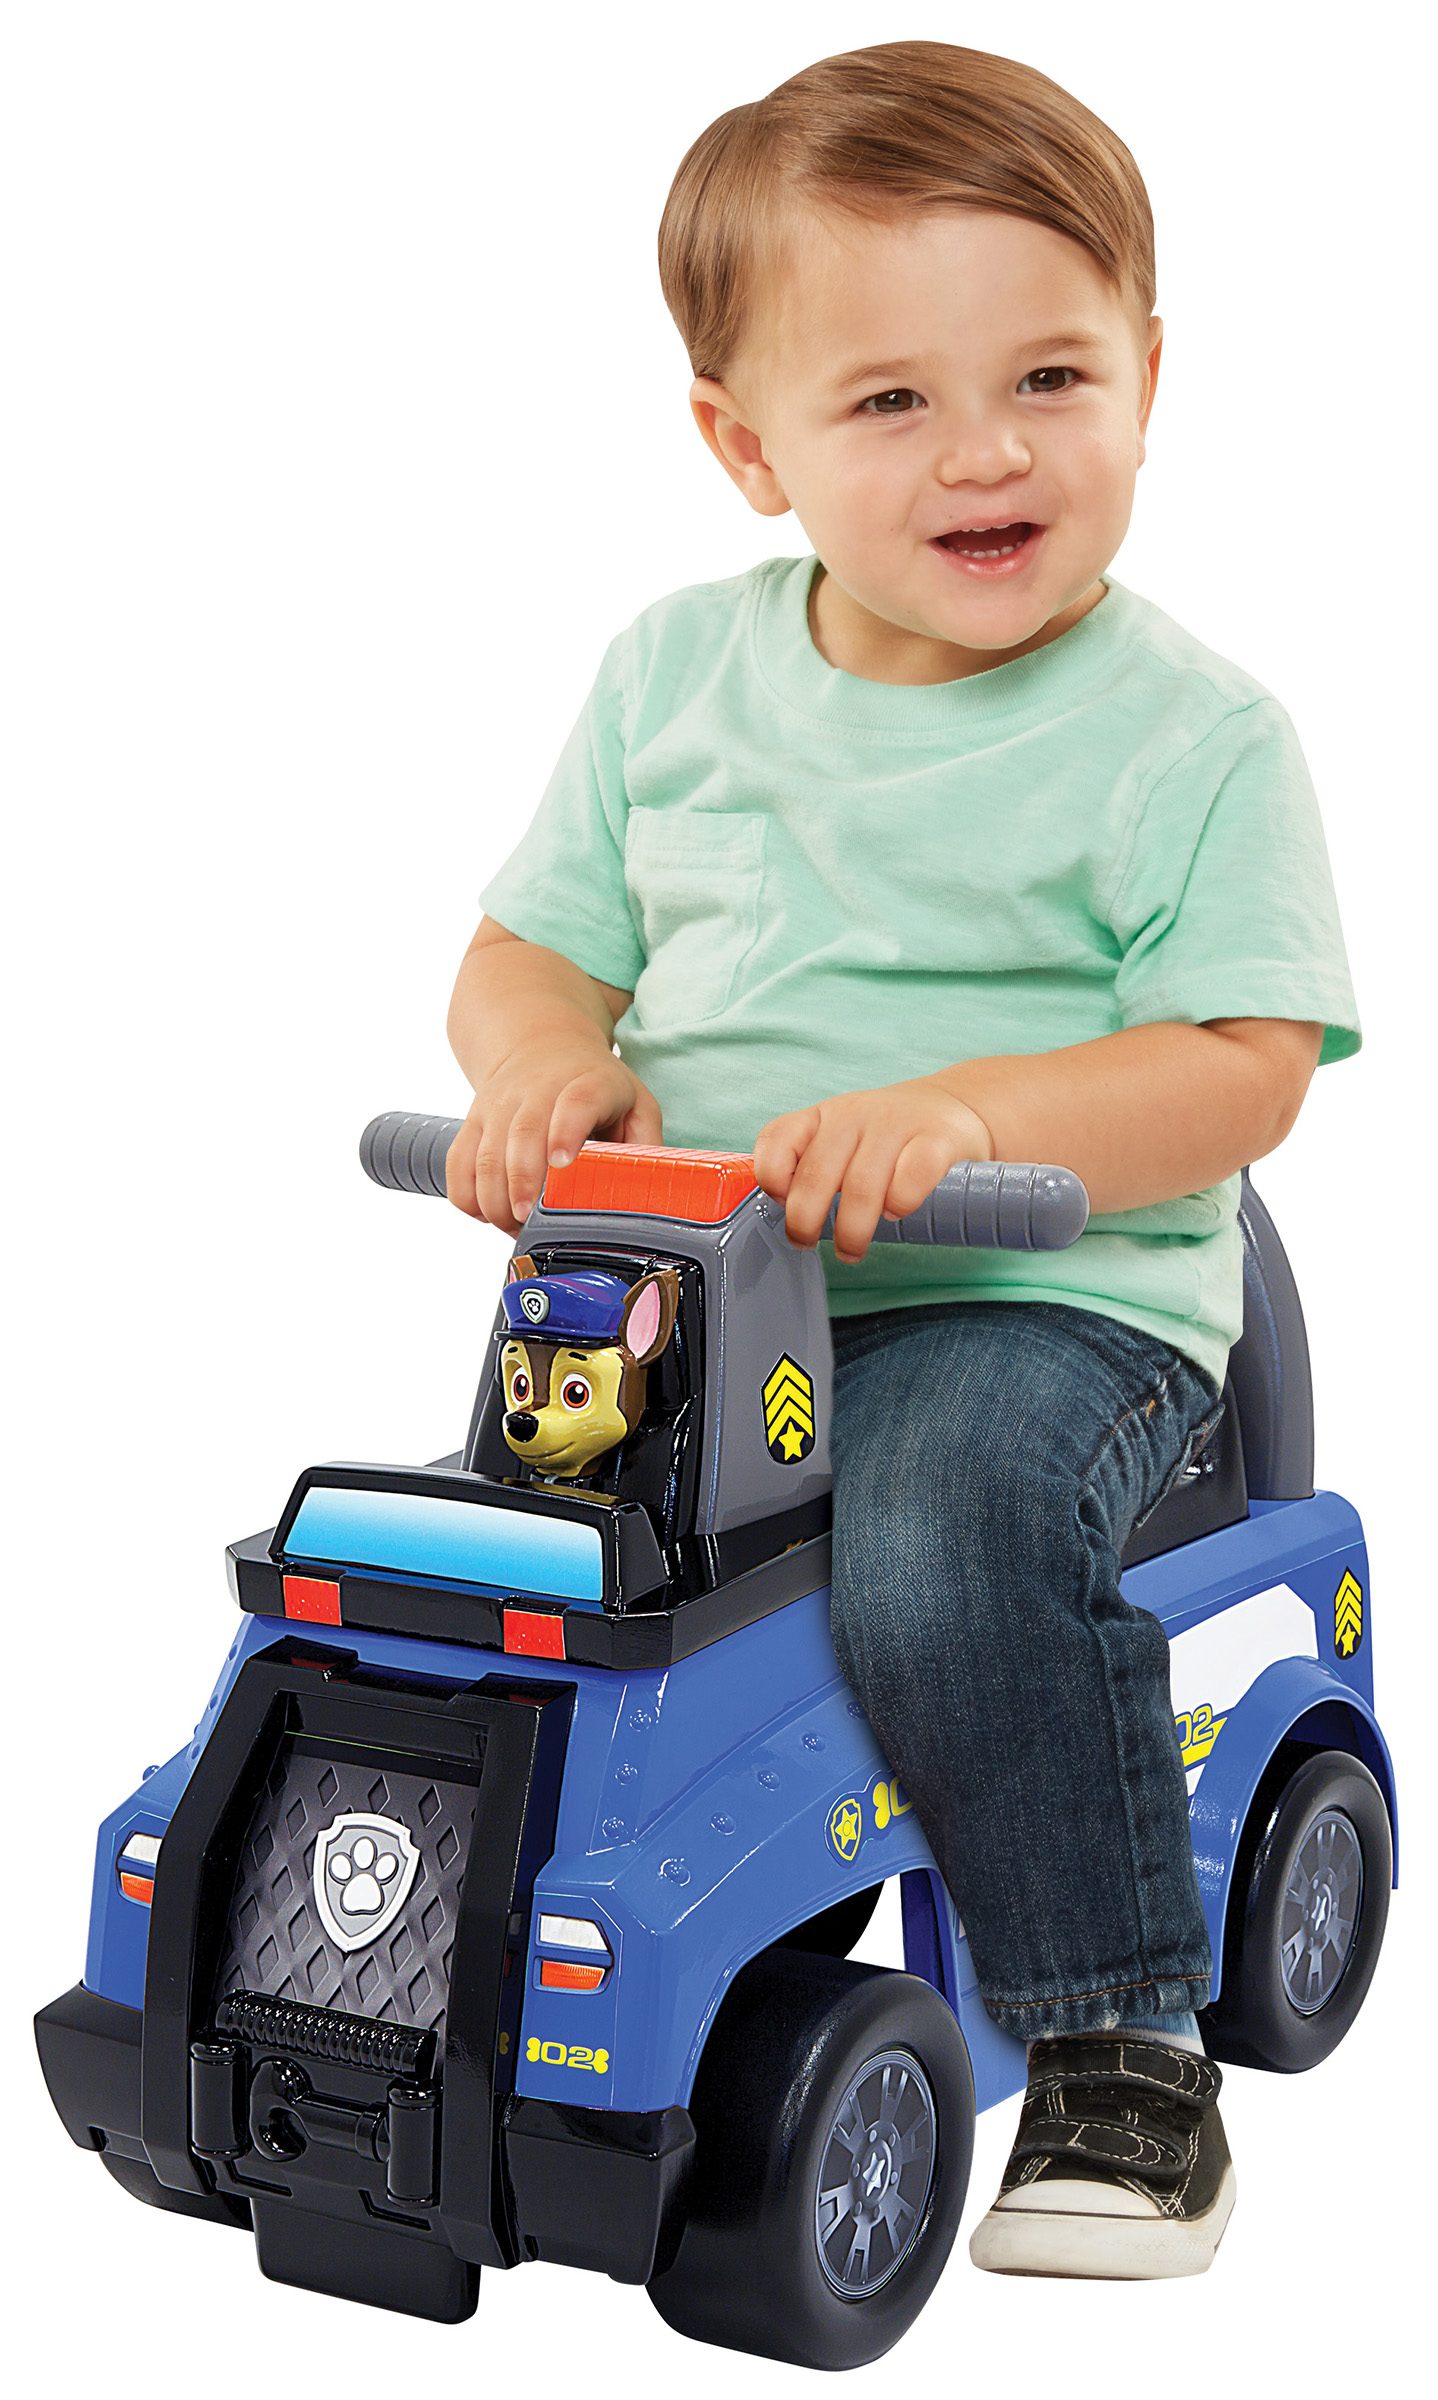 PAW Patrol Chase Cruiser Ride-On